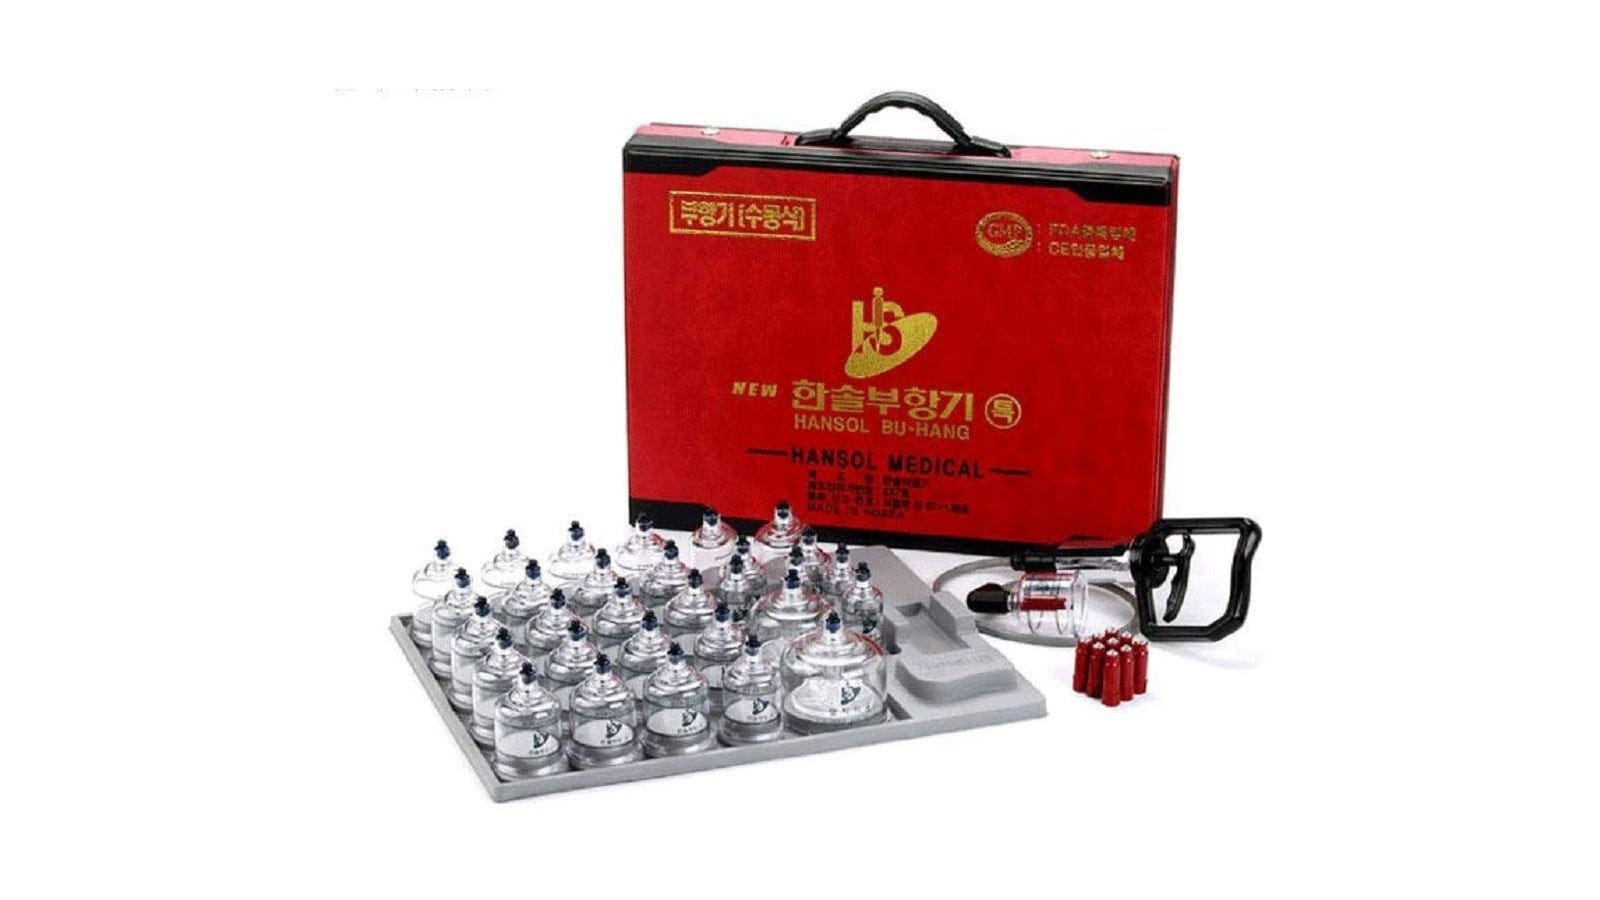 a cupping set with 30 total pieces; cups are lined up by the box and accessories